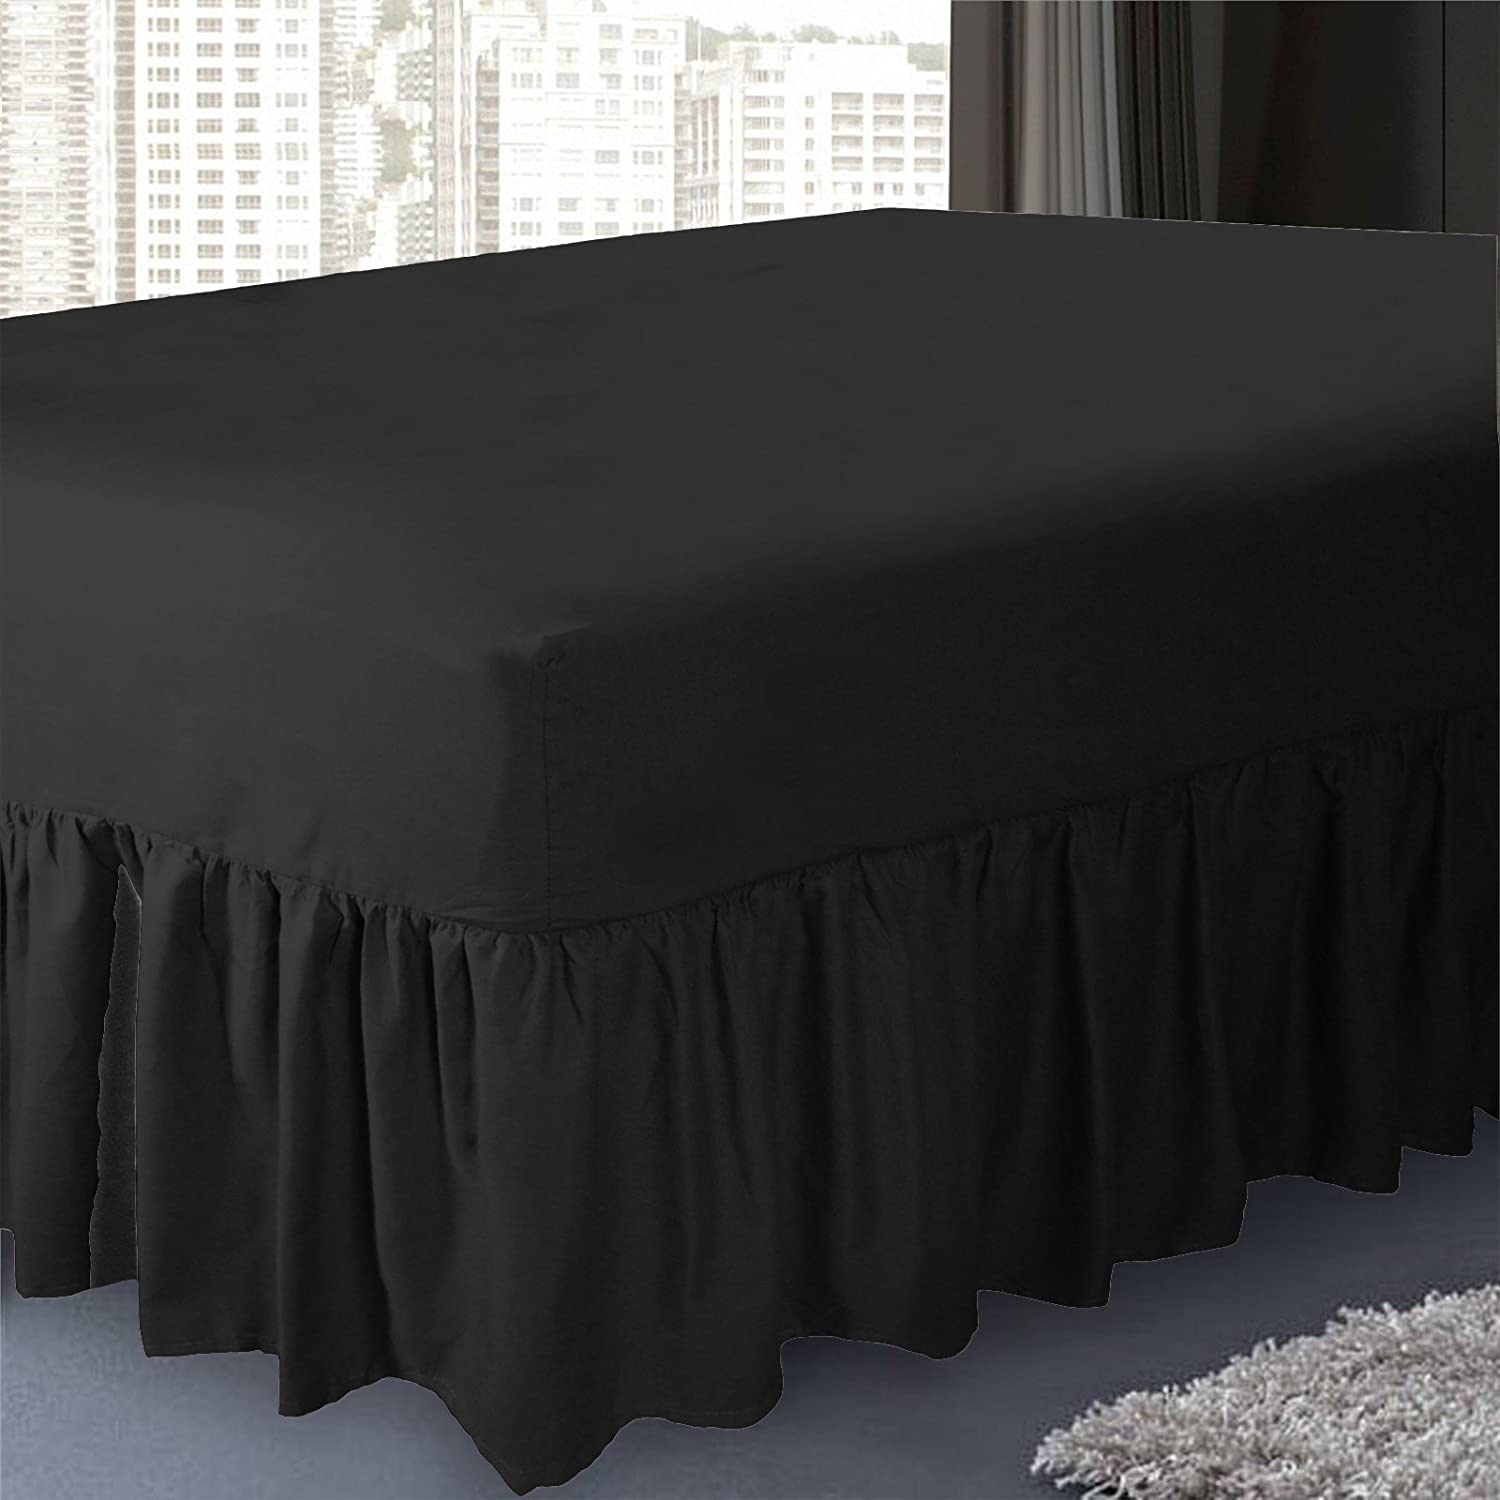 Black PolyCotton Mix 50:50 Valance Sheet By Sleep&Smile : Double Black Valance